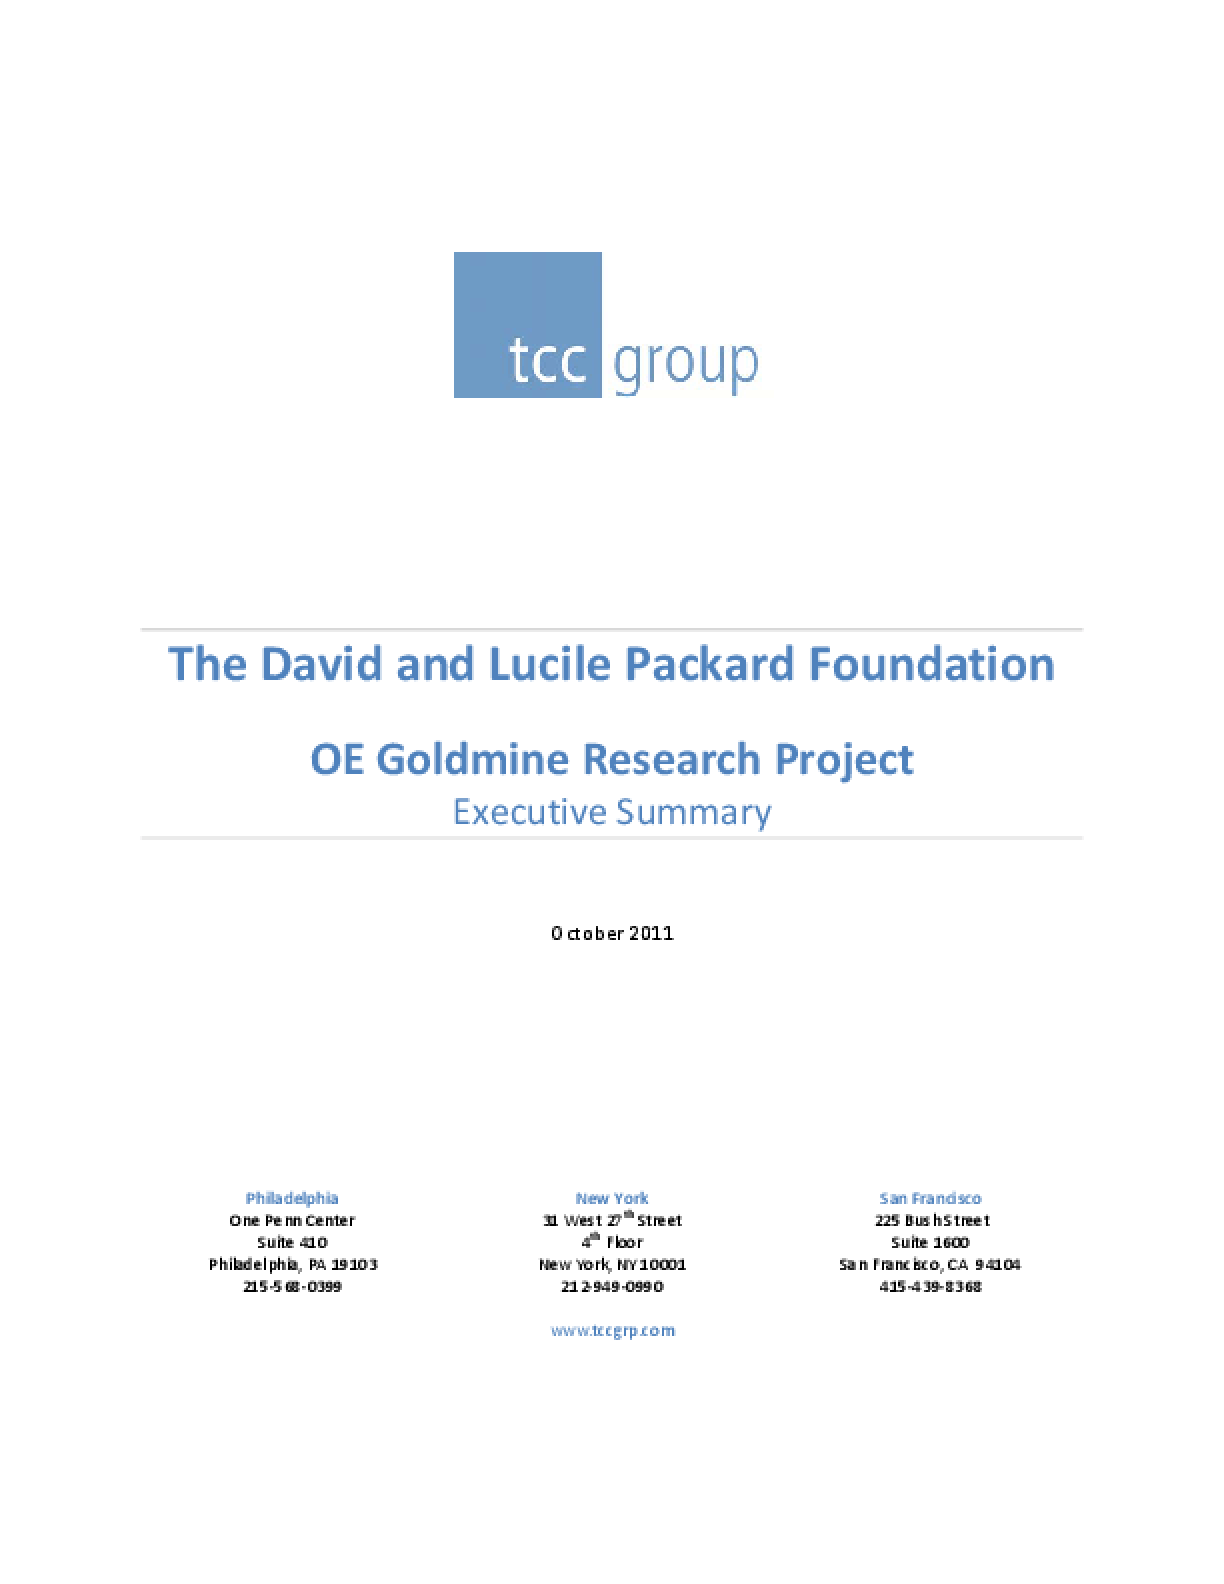 The David and Lucile Packard Foundation OE Goldmine Research Project: Executive Summary